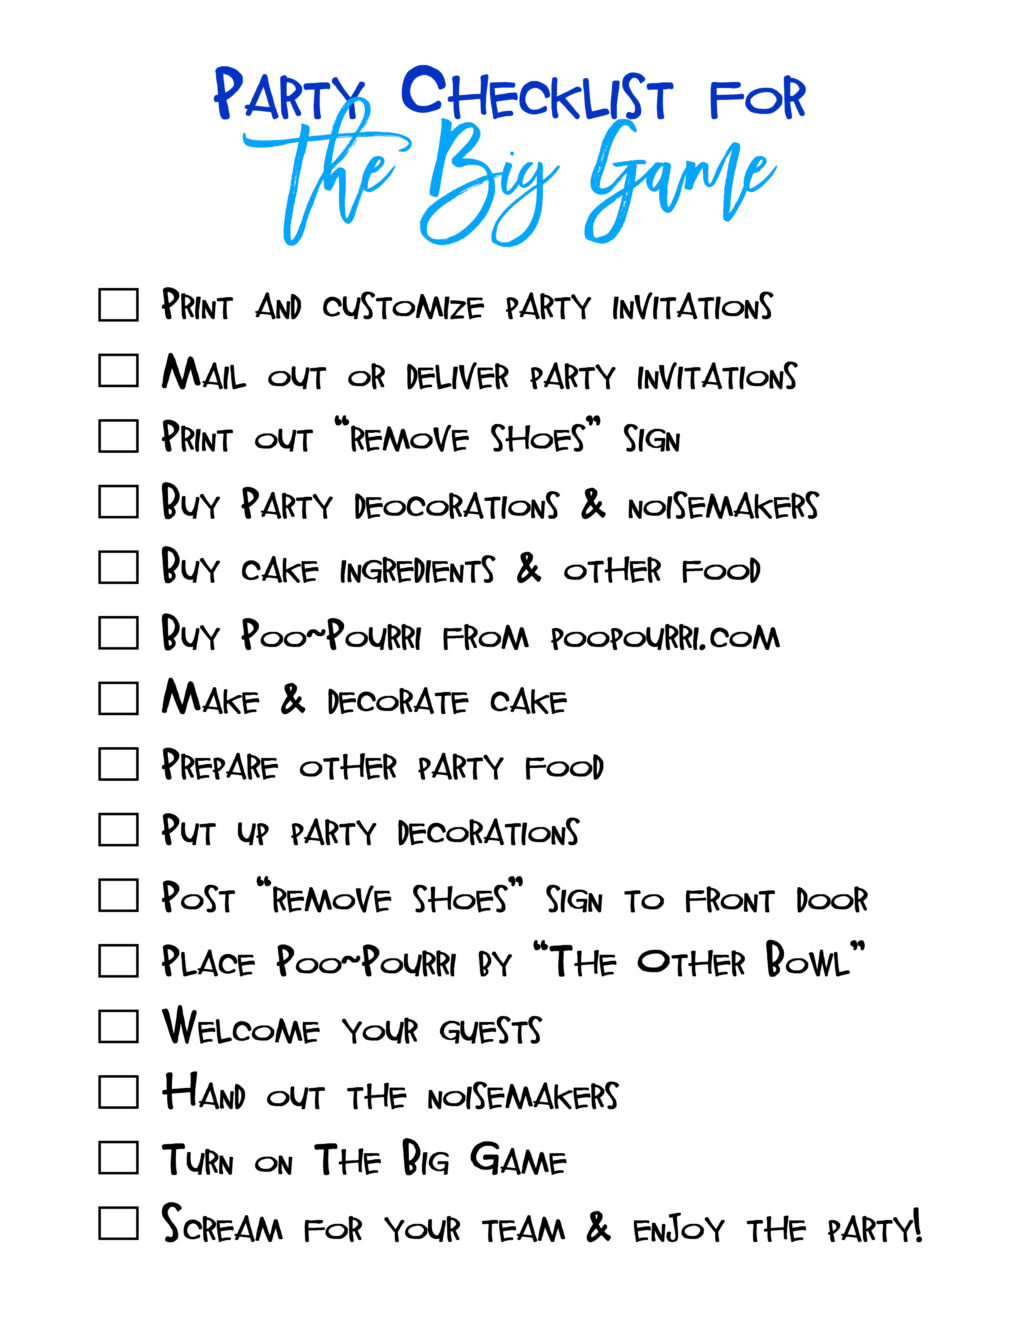 Party Checklist for the Big Game printable